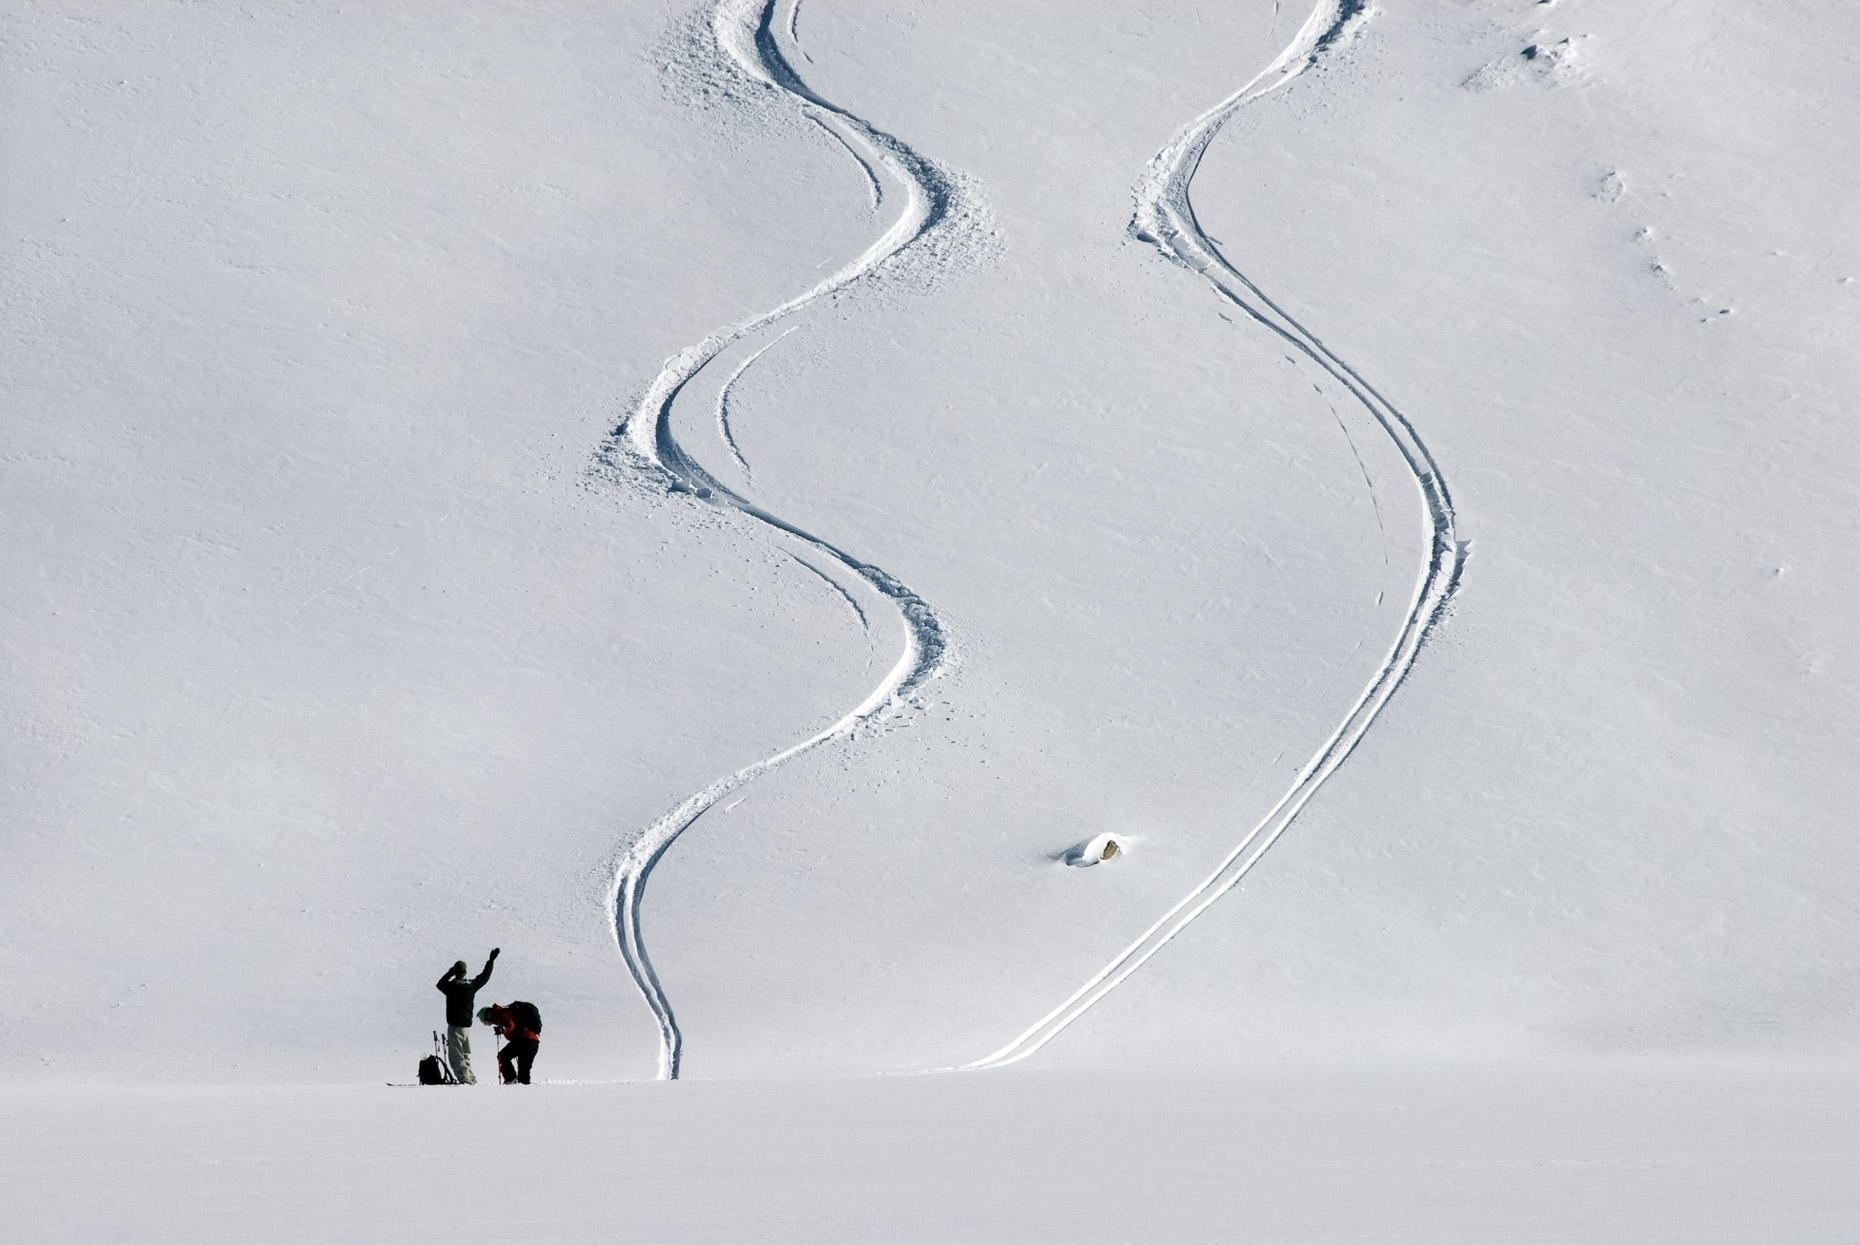 Ski Tracks In Powder - Emigrant Basin, Kirkwood, California